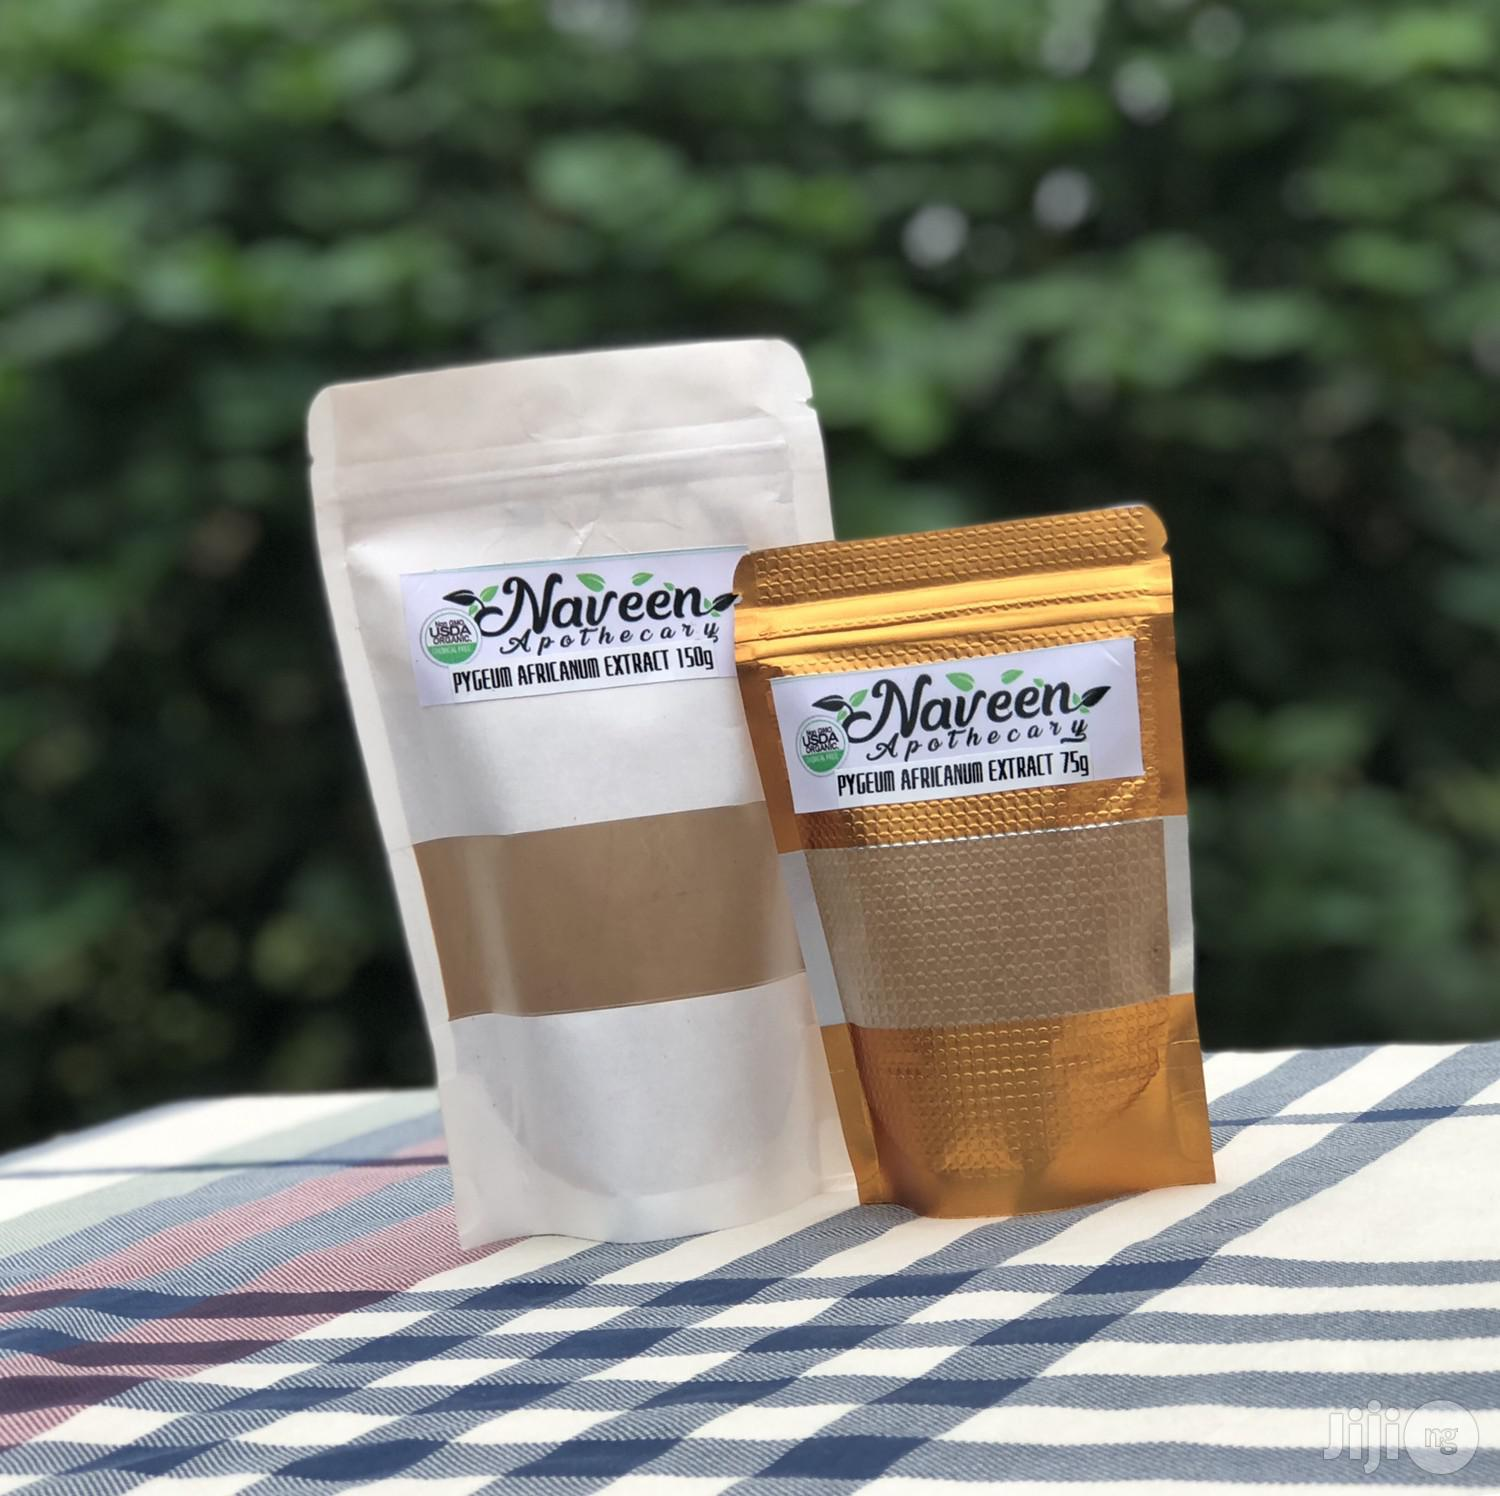 Pygeum Africana Extract Powder | Vitamins & Supplements for sale in Uyo, Akwa Ibom State, Nigeria